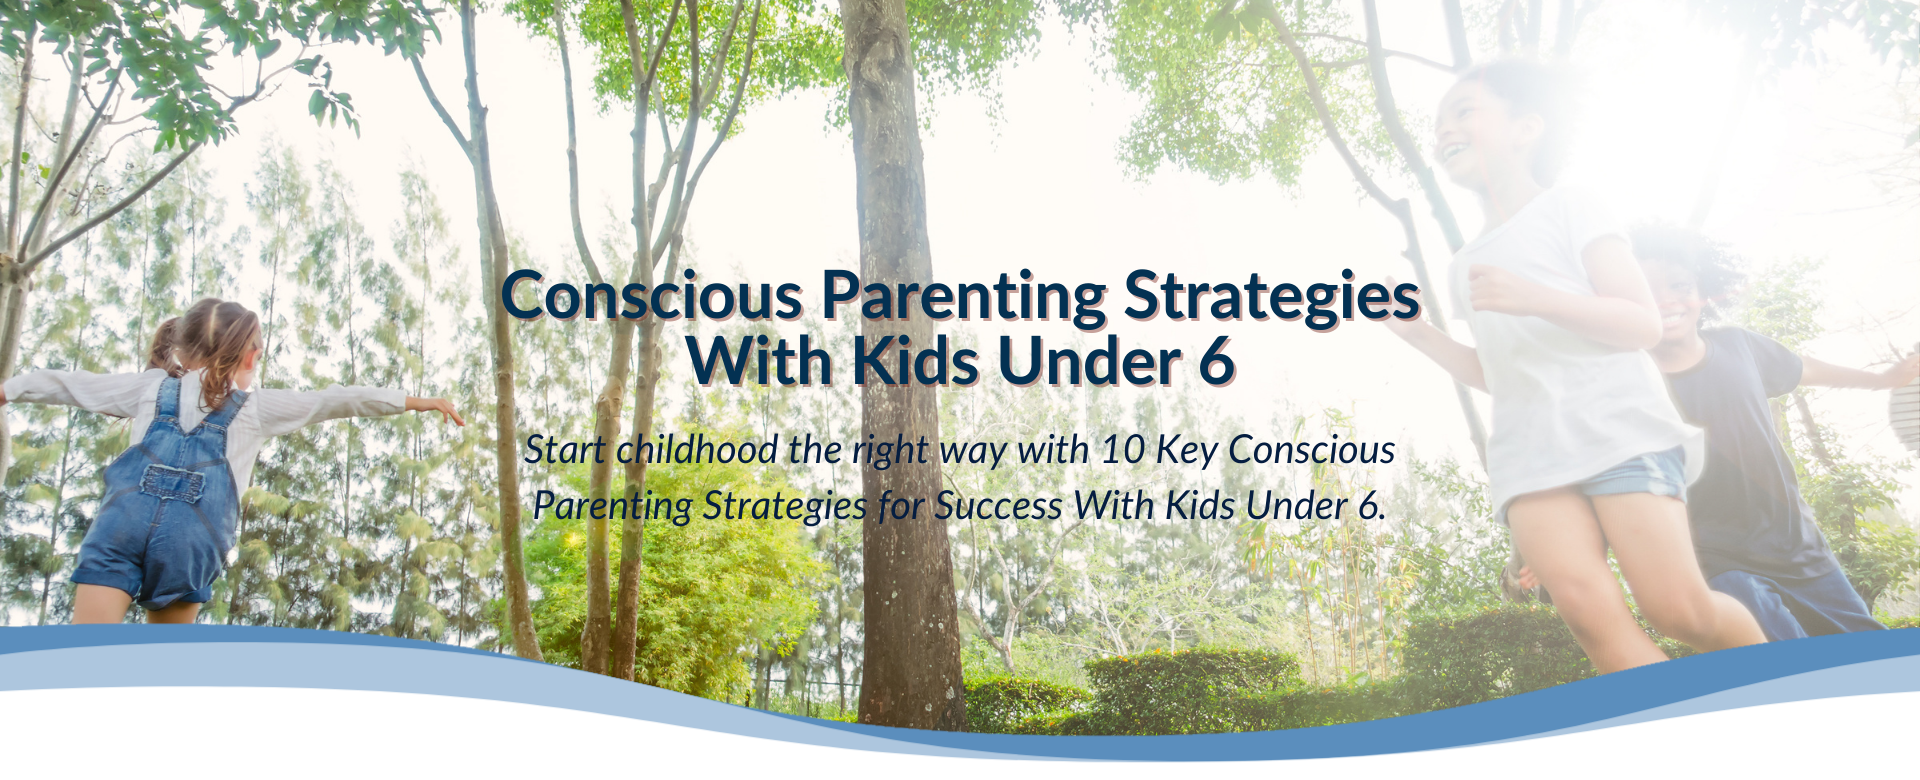 Conscious Parenting Strategies For Success With Kids Under 6